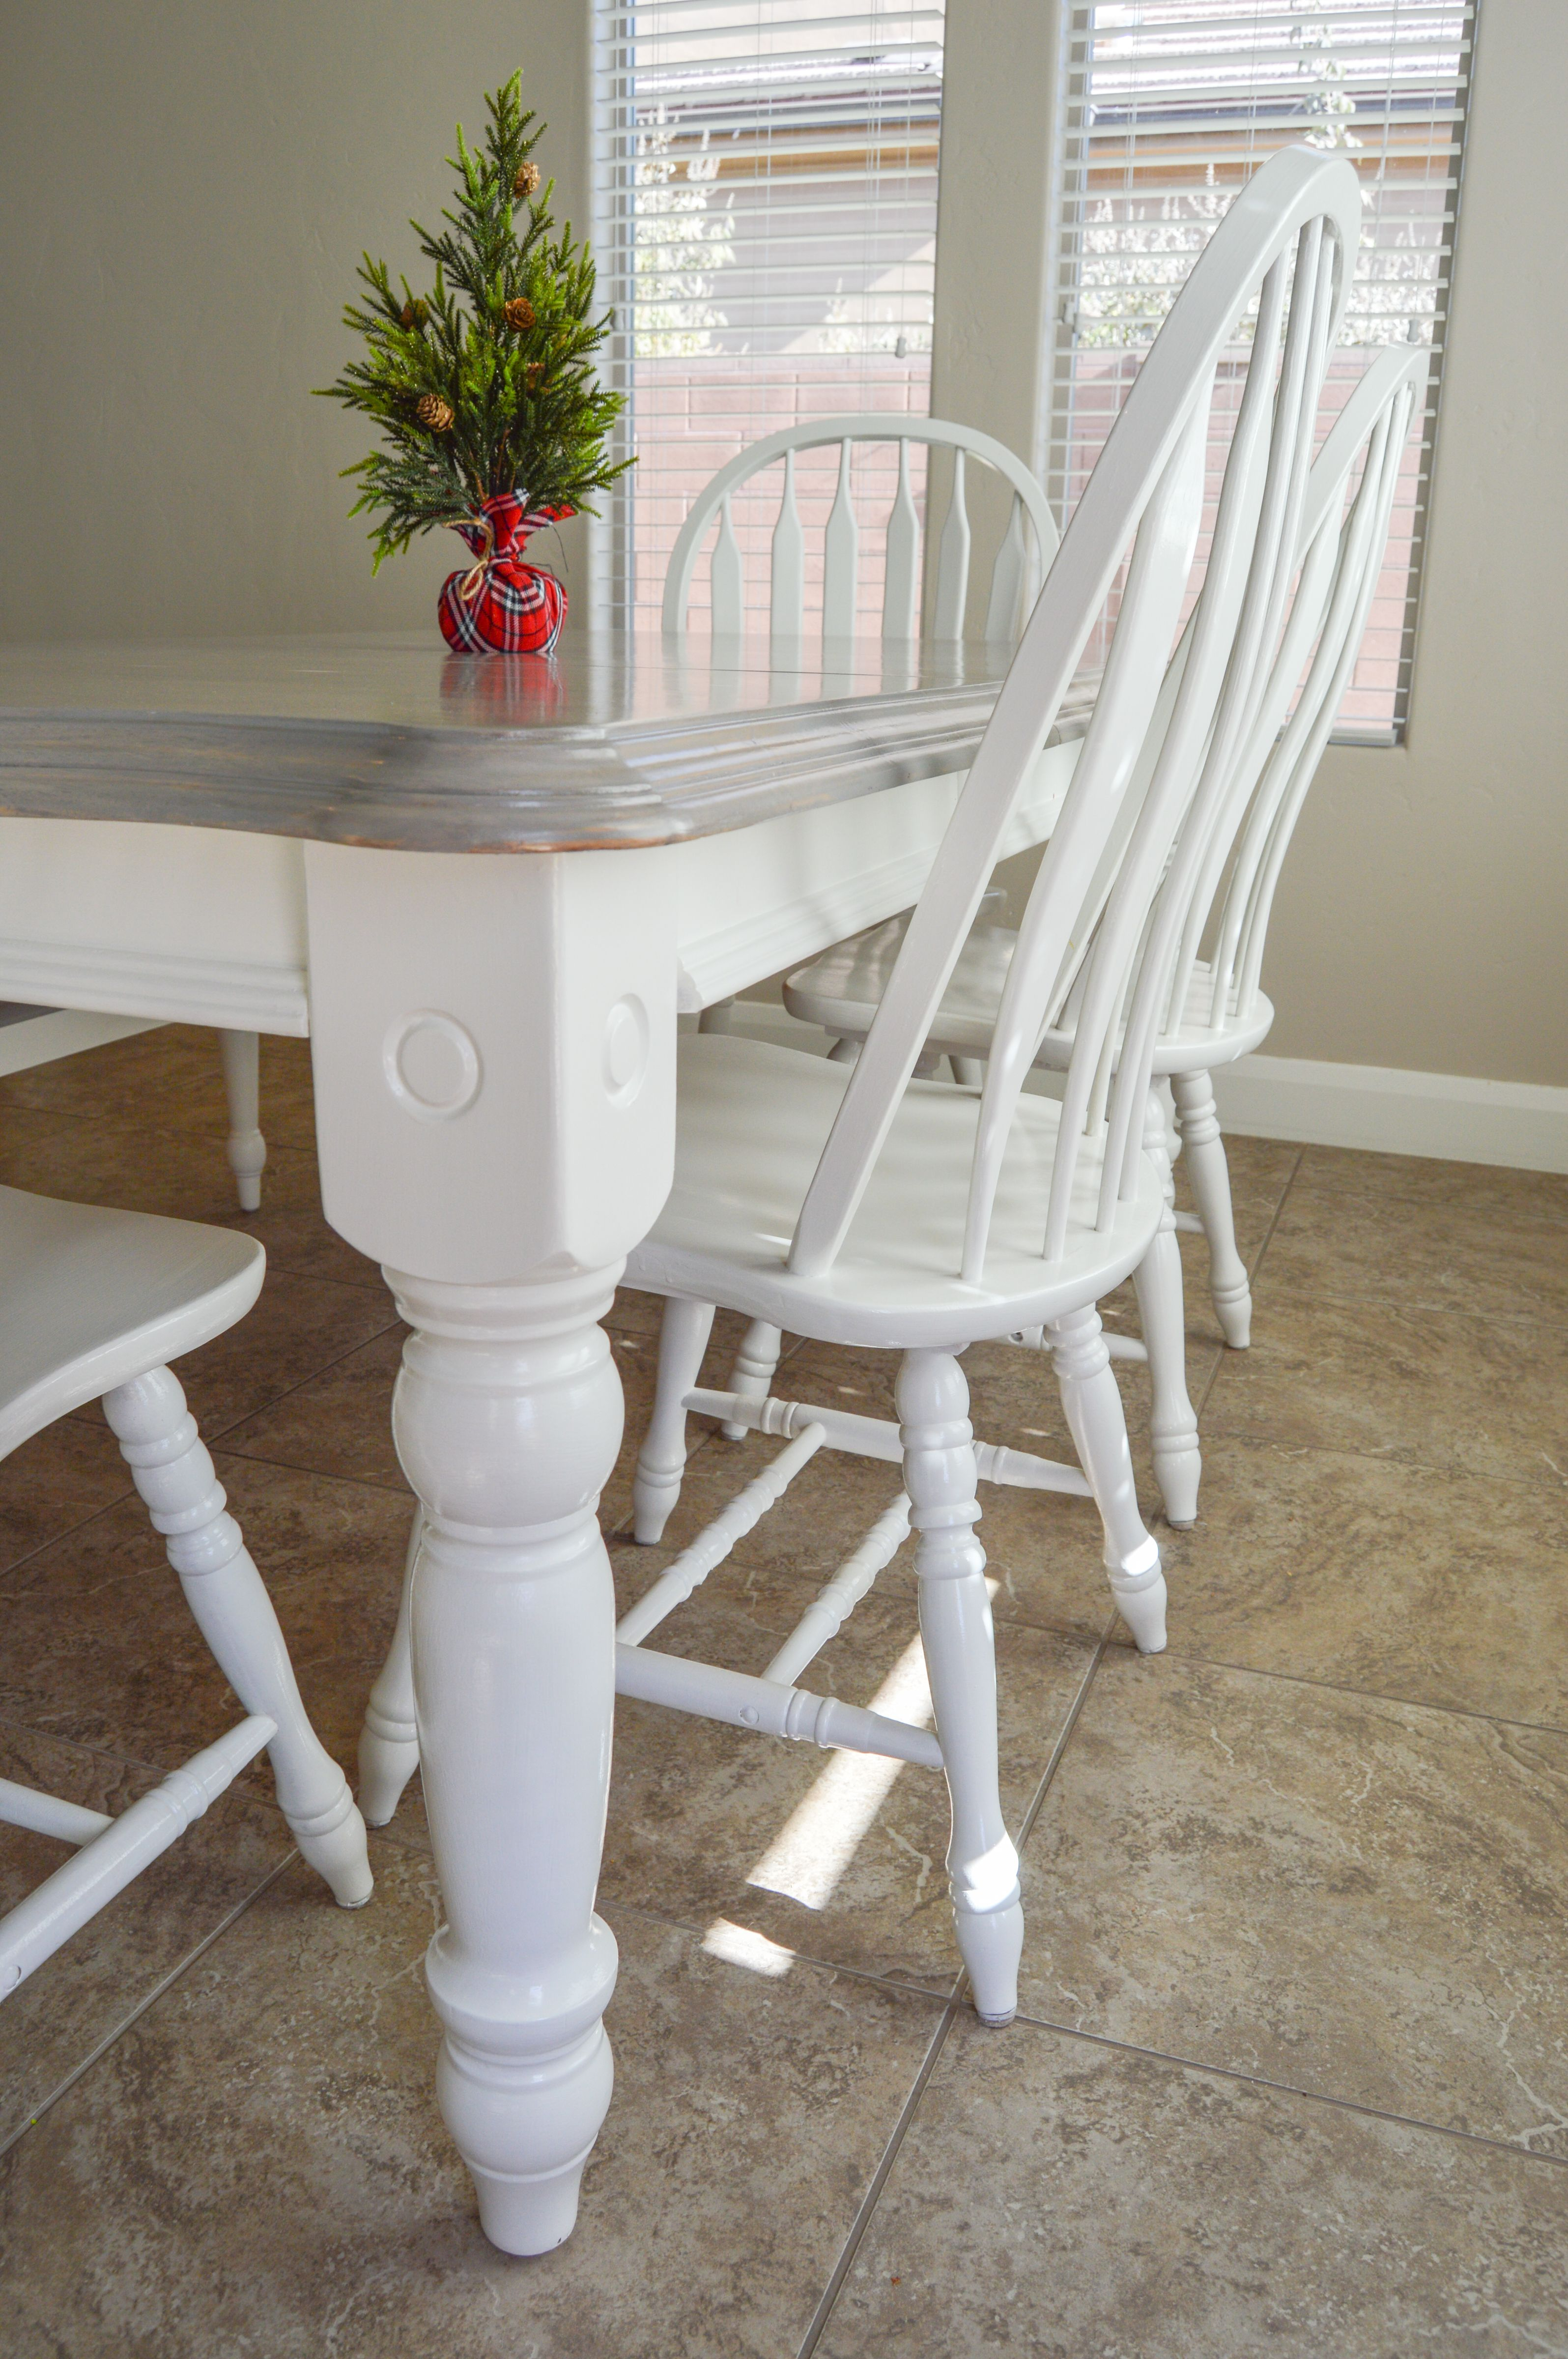 Diy Grey Paint Wash Dining Table Chairs Dining Room Table Makeover Painted Dining Room Table Diy Dining Room Table